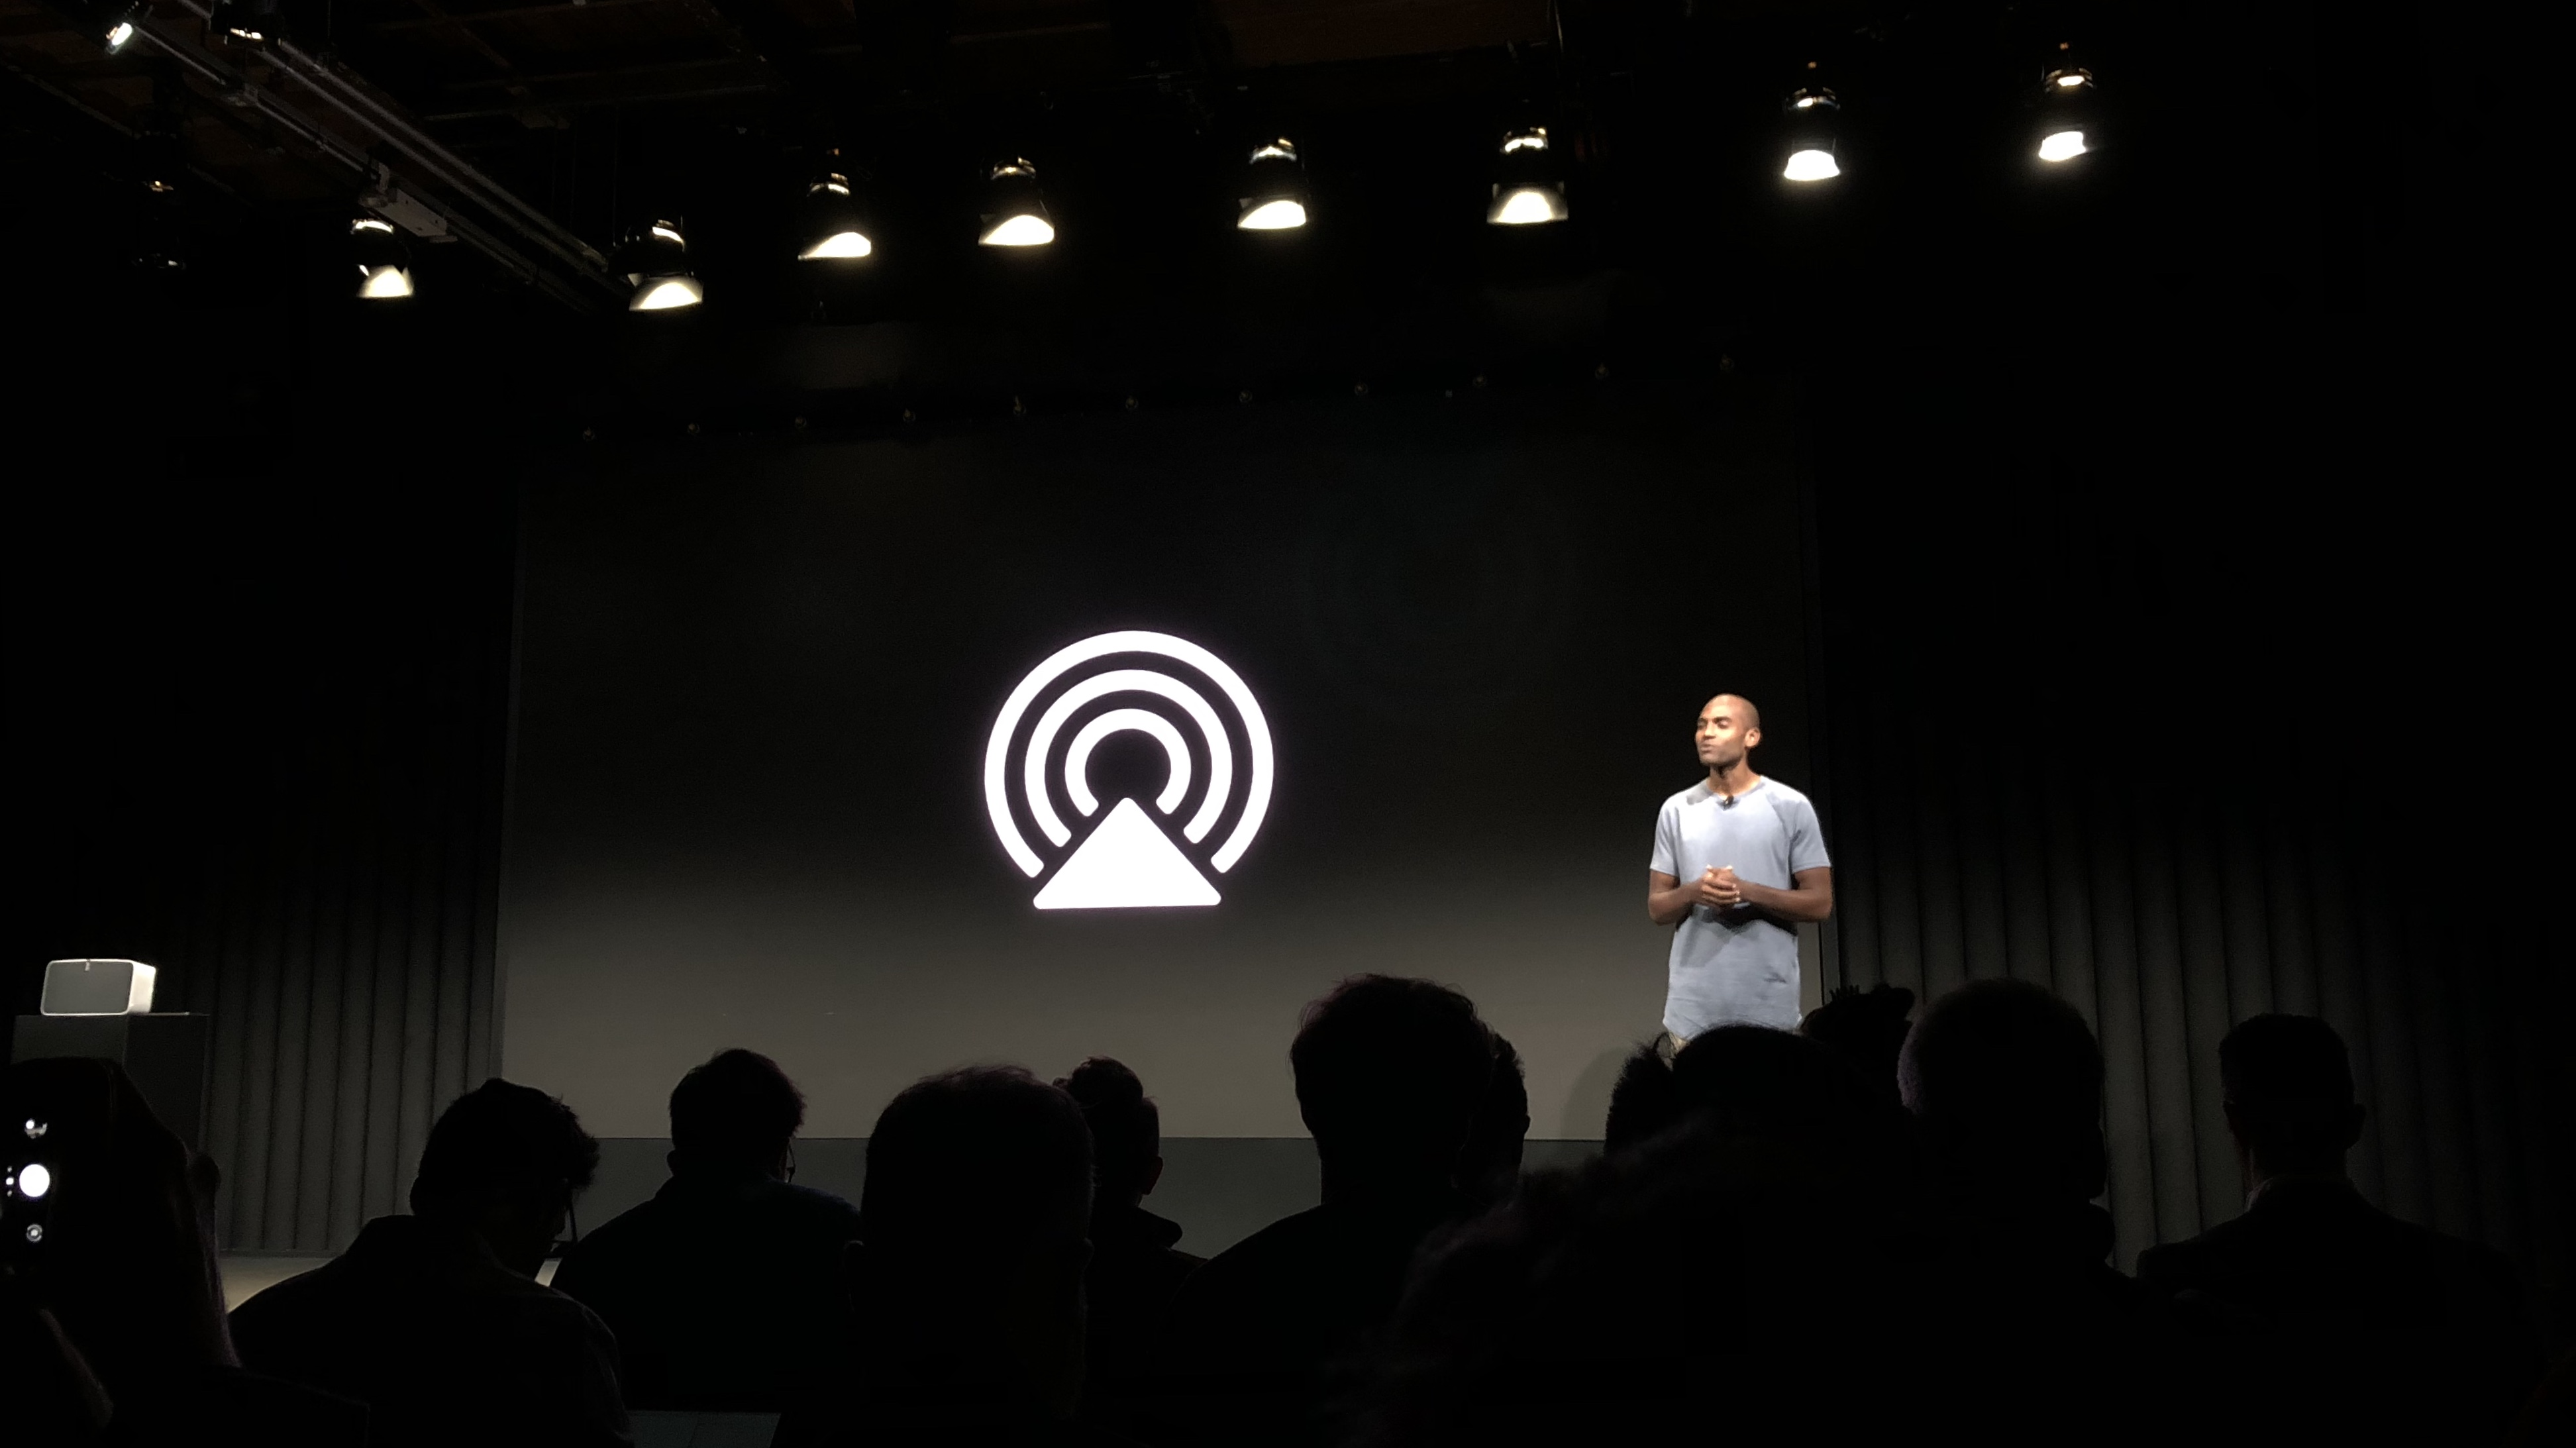 Sonos says AirPlay 2 and Siri control coming next year